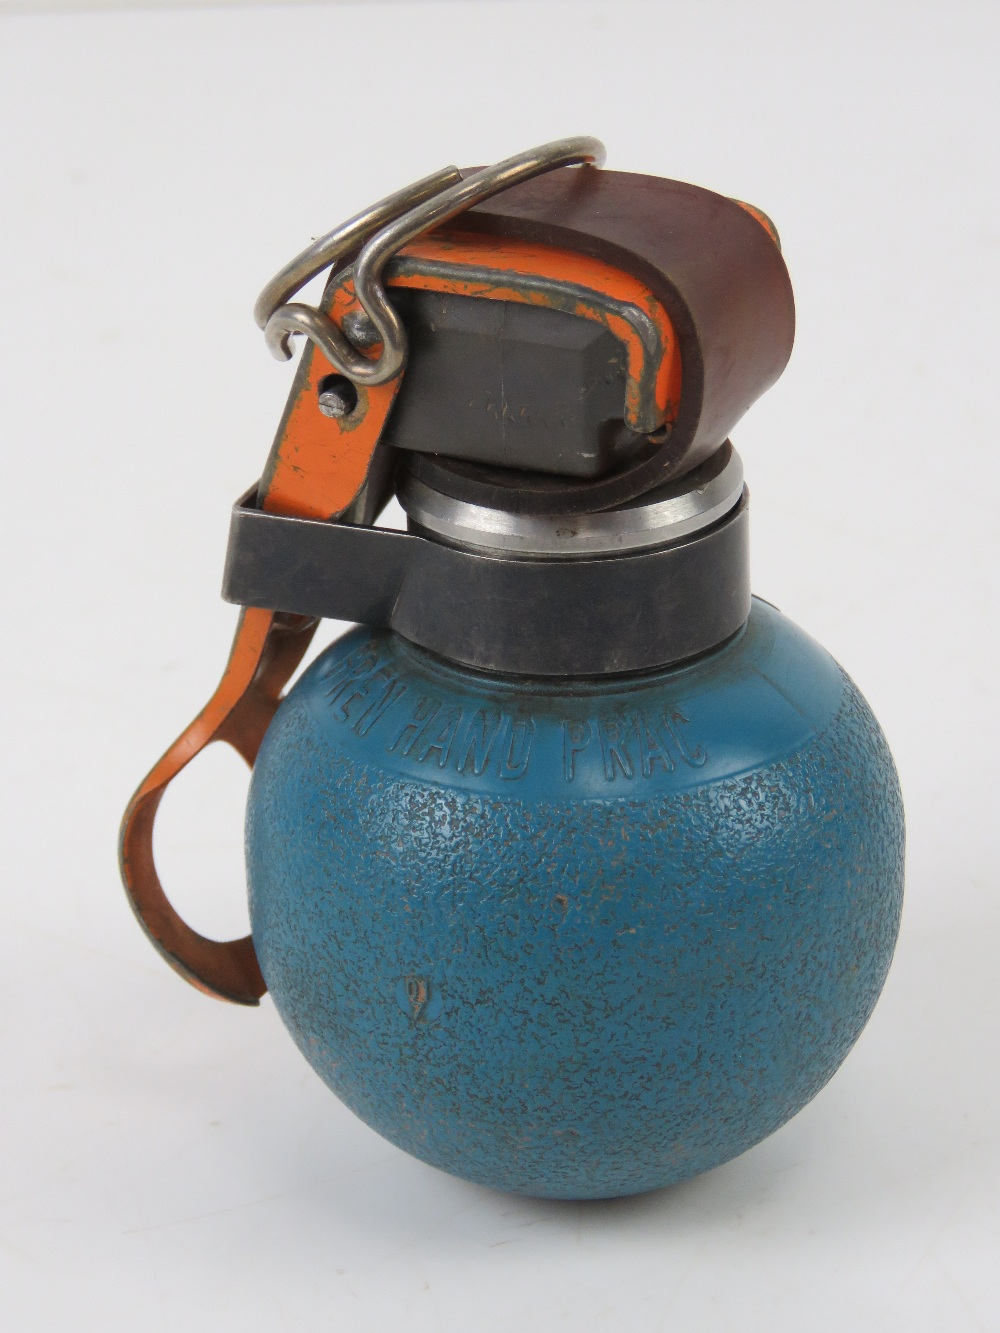 An inert British military L111 A1 B1 practice grenade. - Image 2 of 4